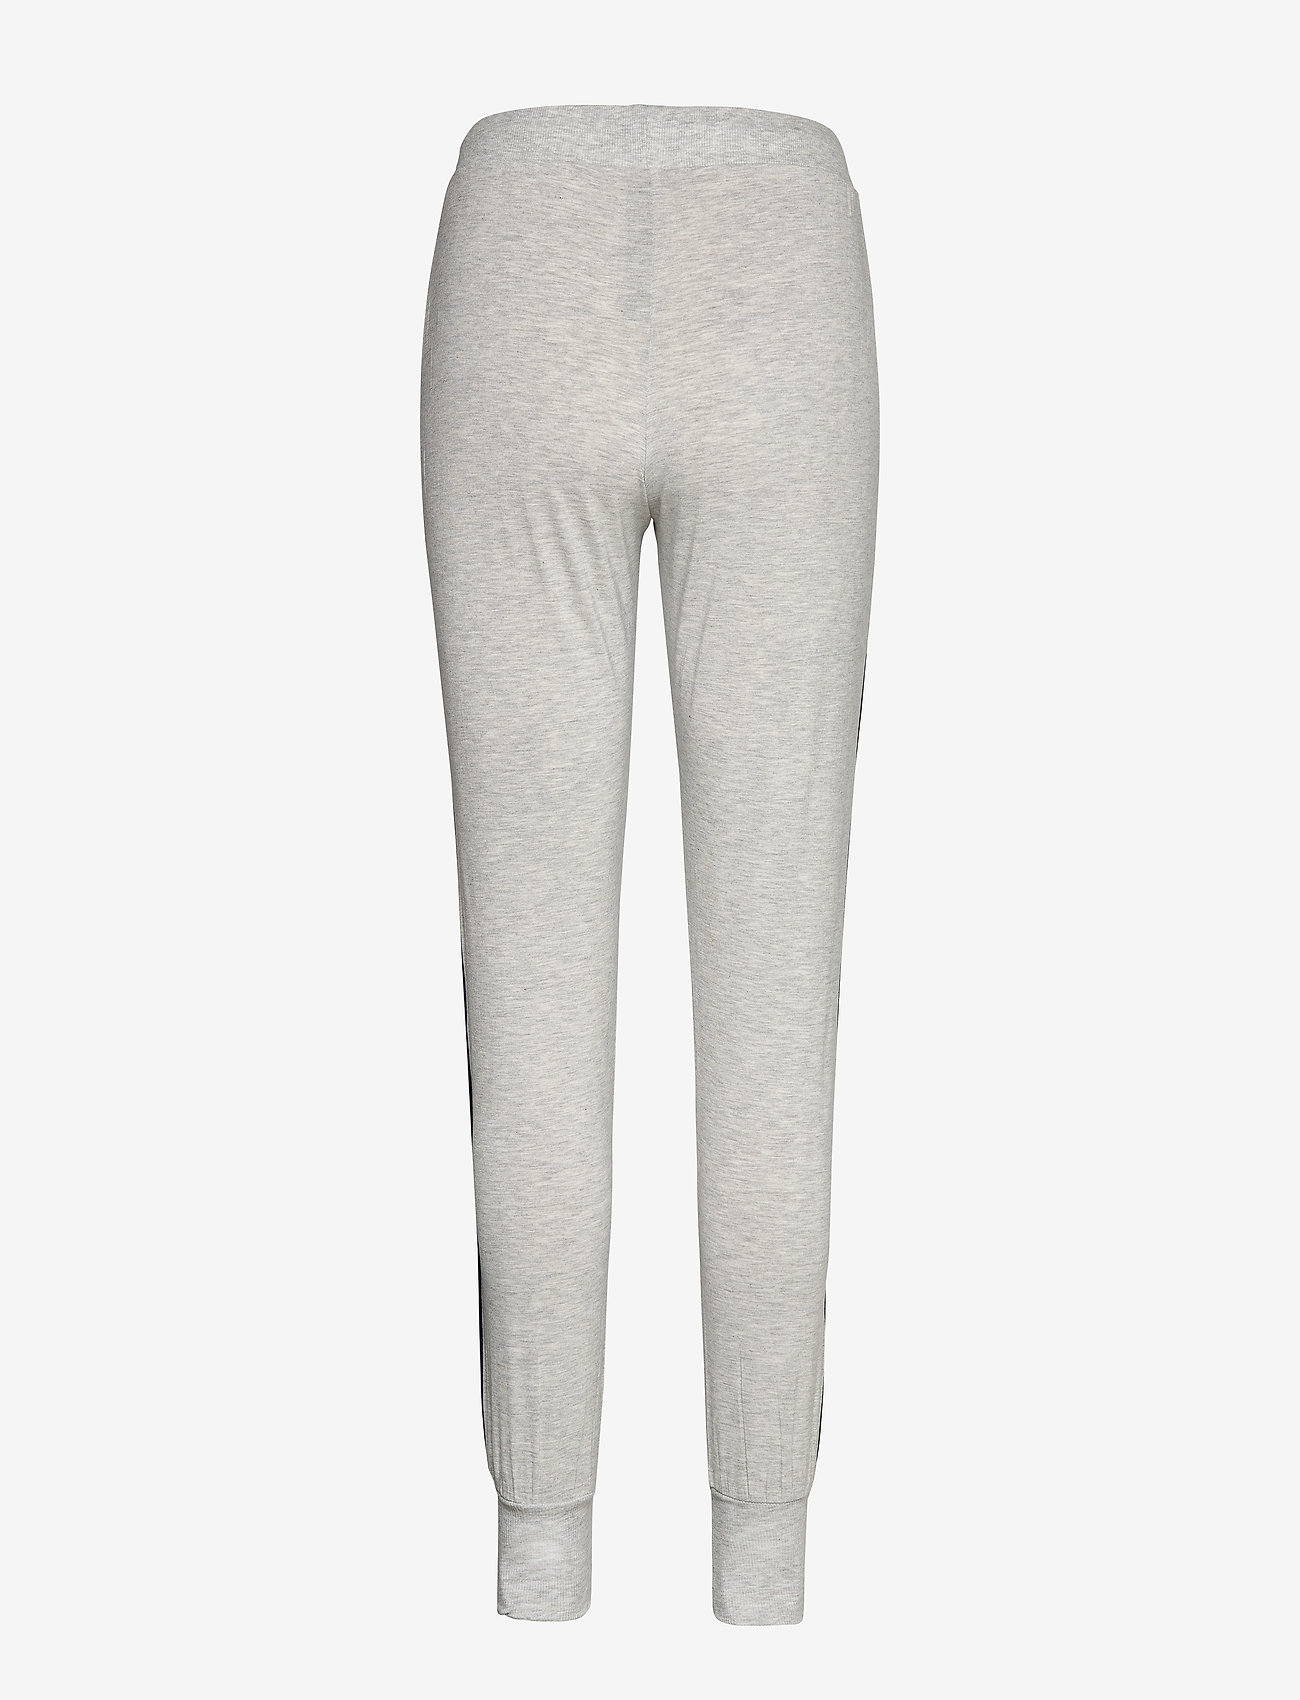 Esprit Bodywear Women - Nightpants - bottoms - light grey - 1